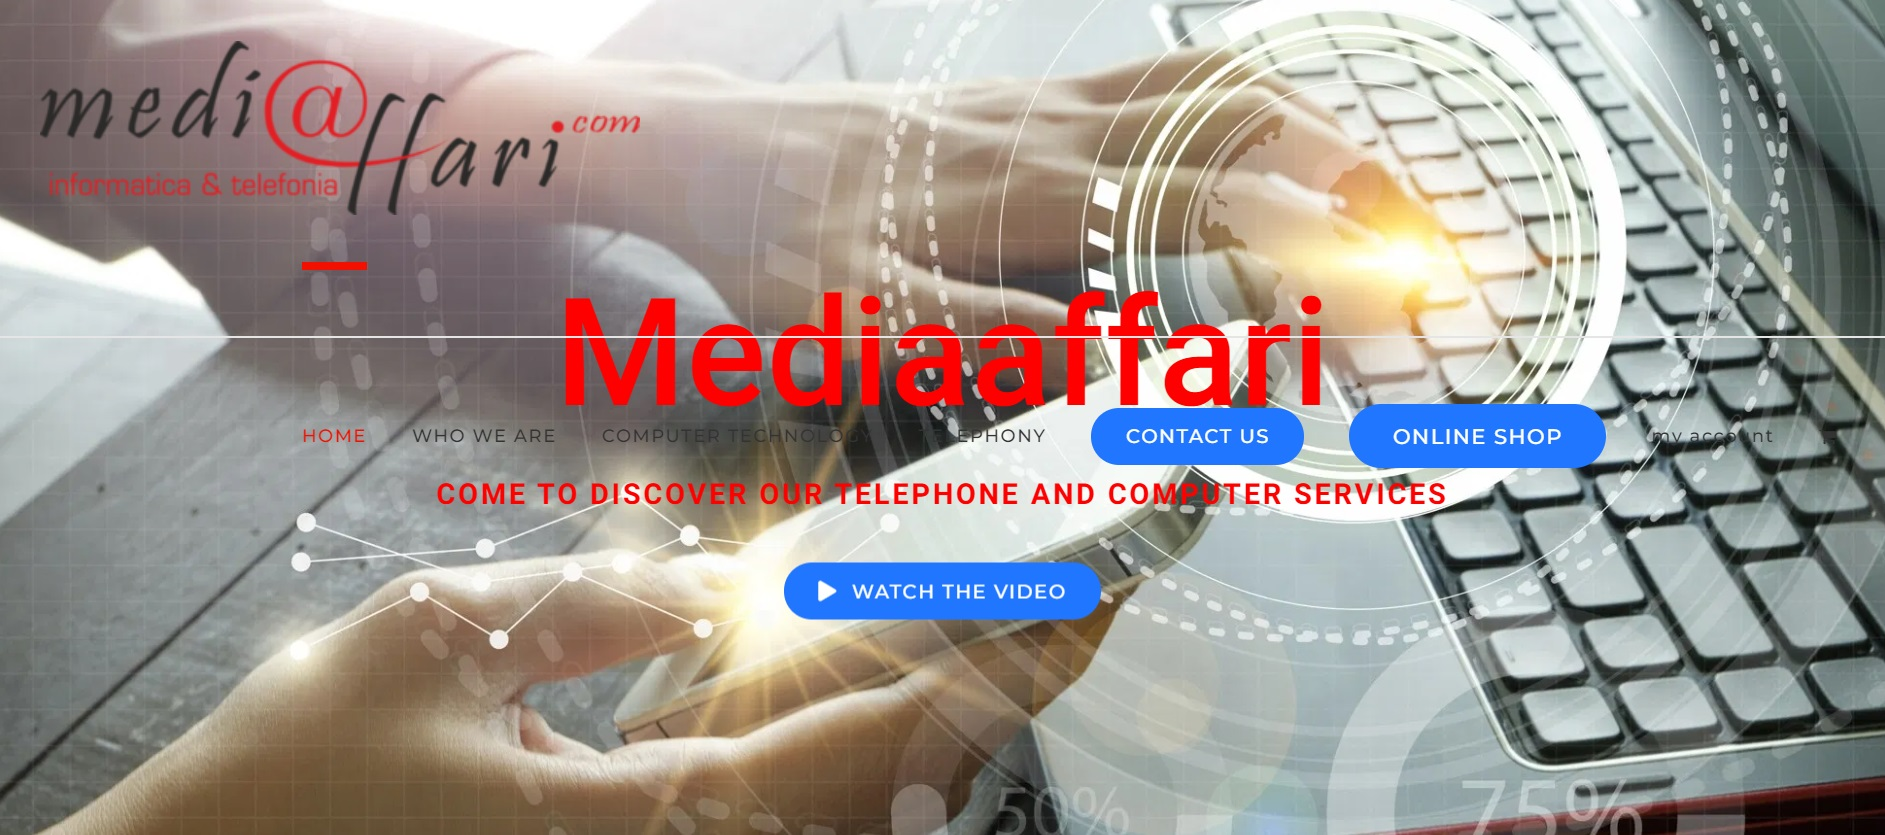 MediaAffari Advanced IT Repairs & Sales Web Design and e commerce Software